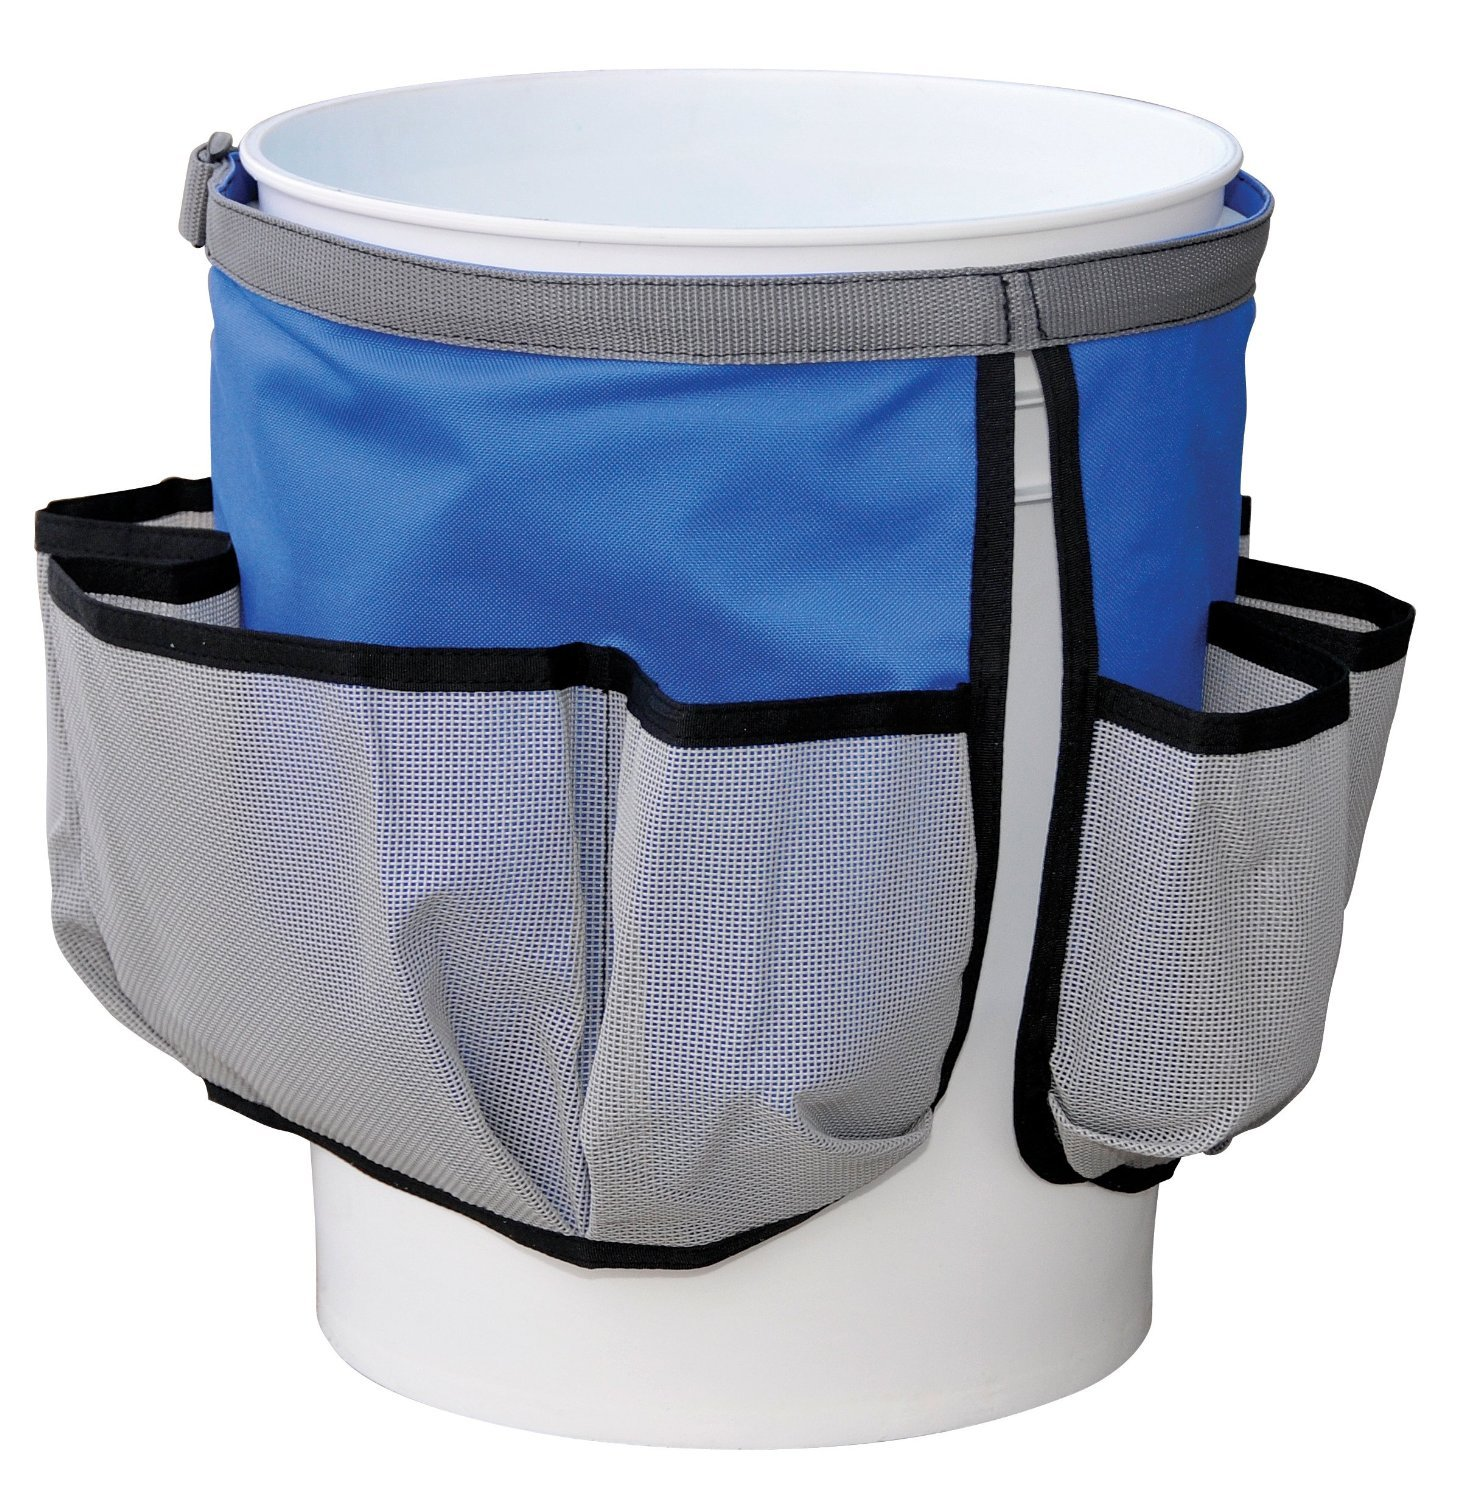 Groom Industries Busy Pockets Bucket Caddy (Pack of 55)